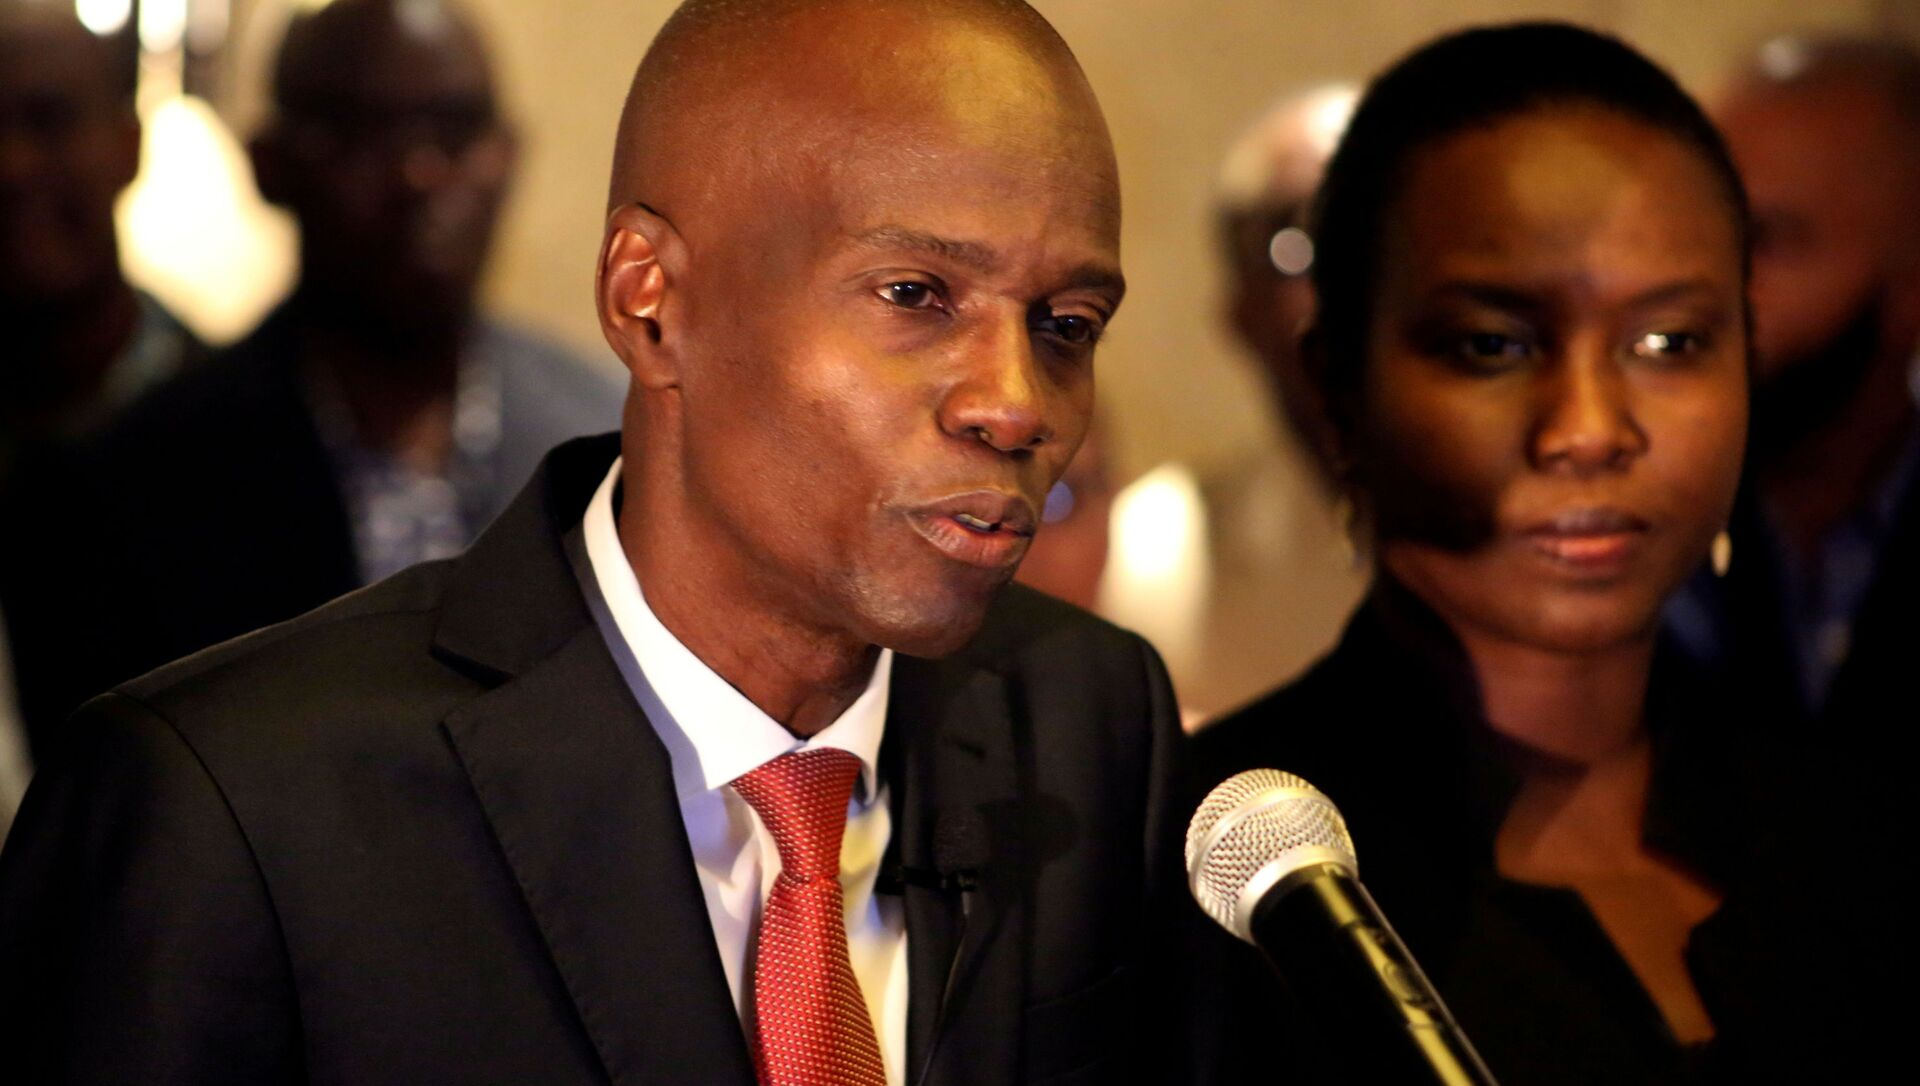 FILE PHOTO: Jovenel Moise addresses the media next to his wife Martine after winning the 2016 presidential election, in Port-au-Prince, Haiti. Picture taken November 28, 2016 - Sputnik International, 1920, 24.07.2021